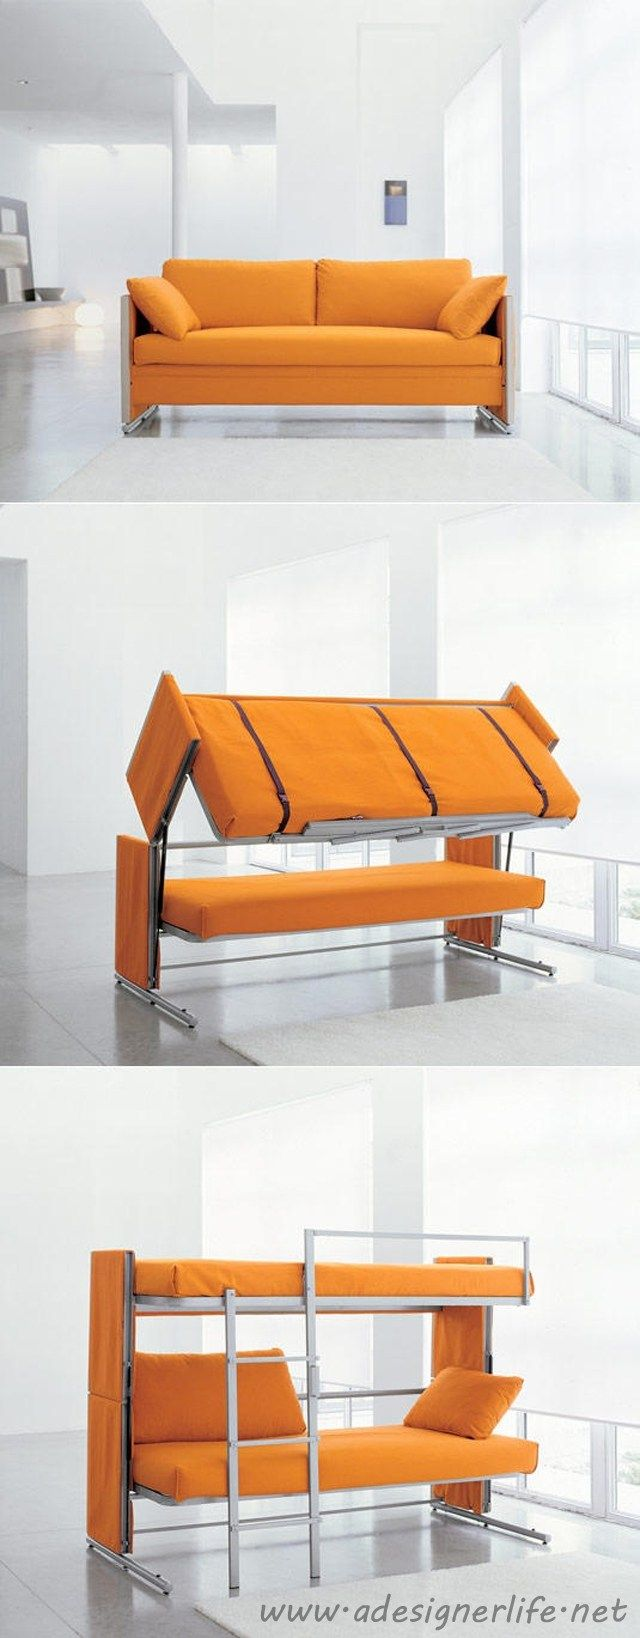 Awesome Products : The most amazing convertible furniture. Ever